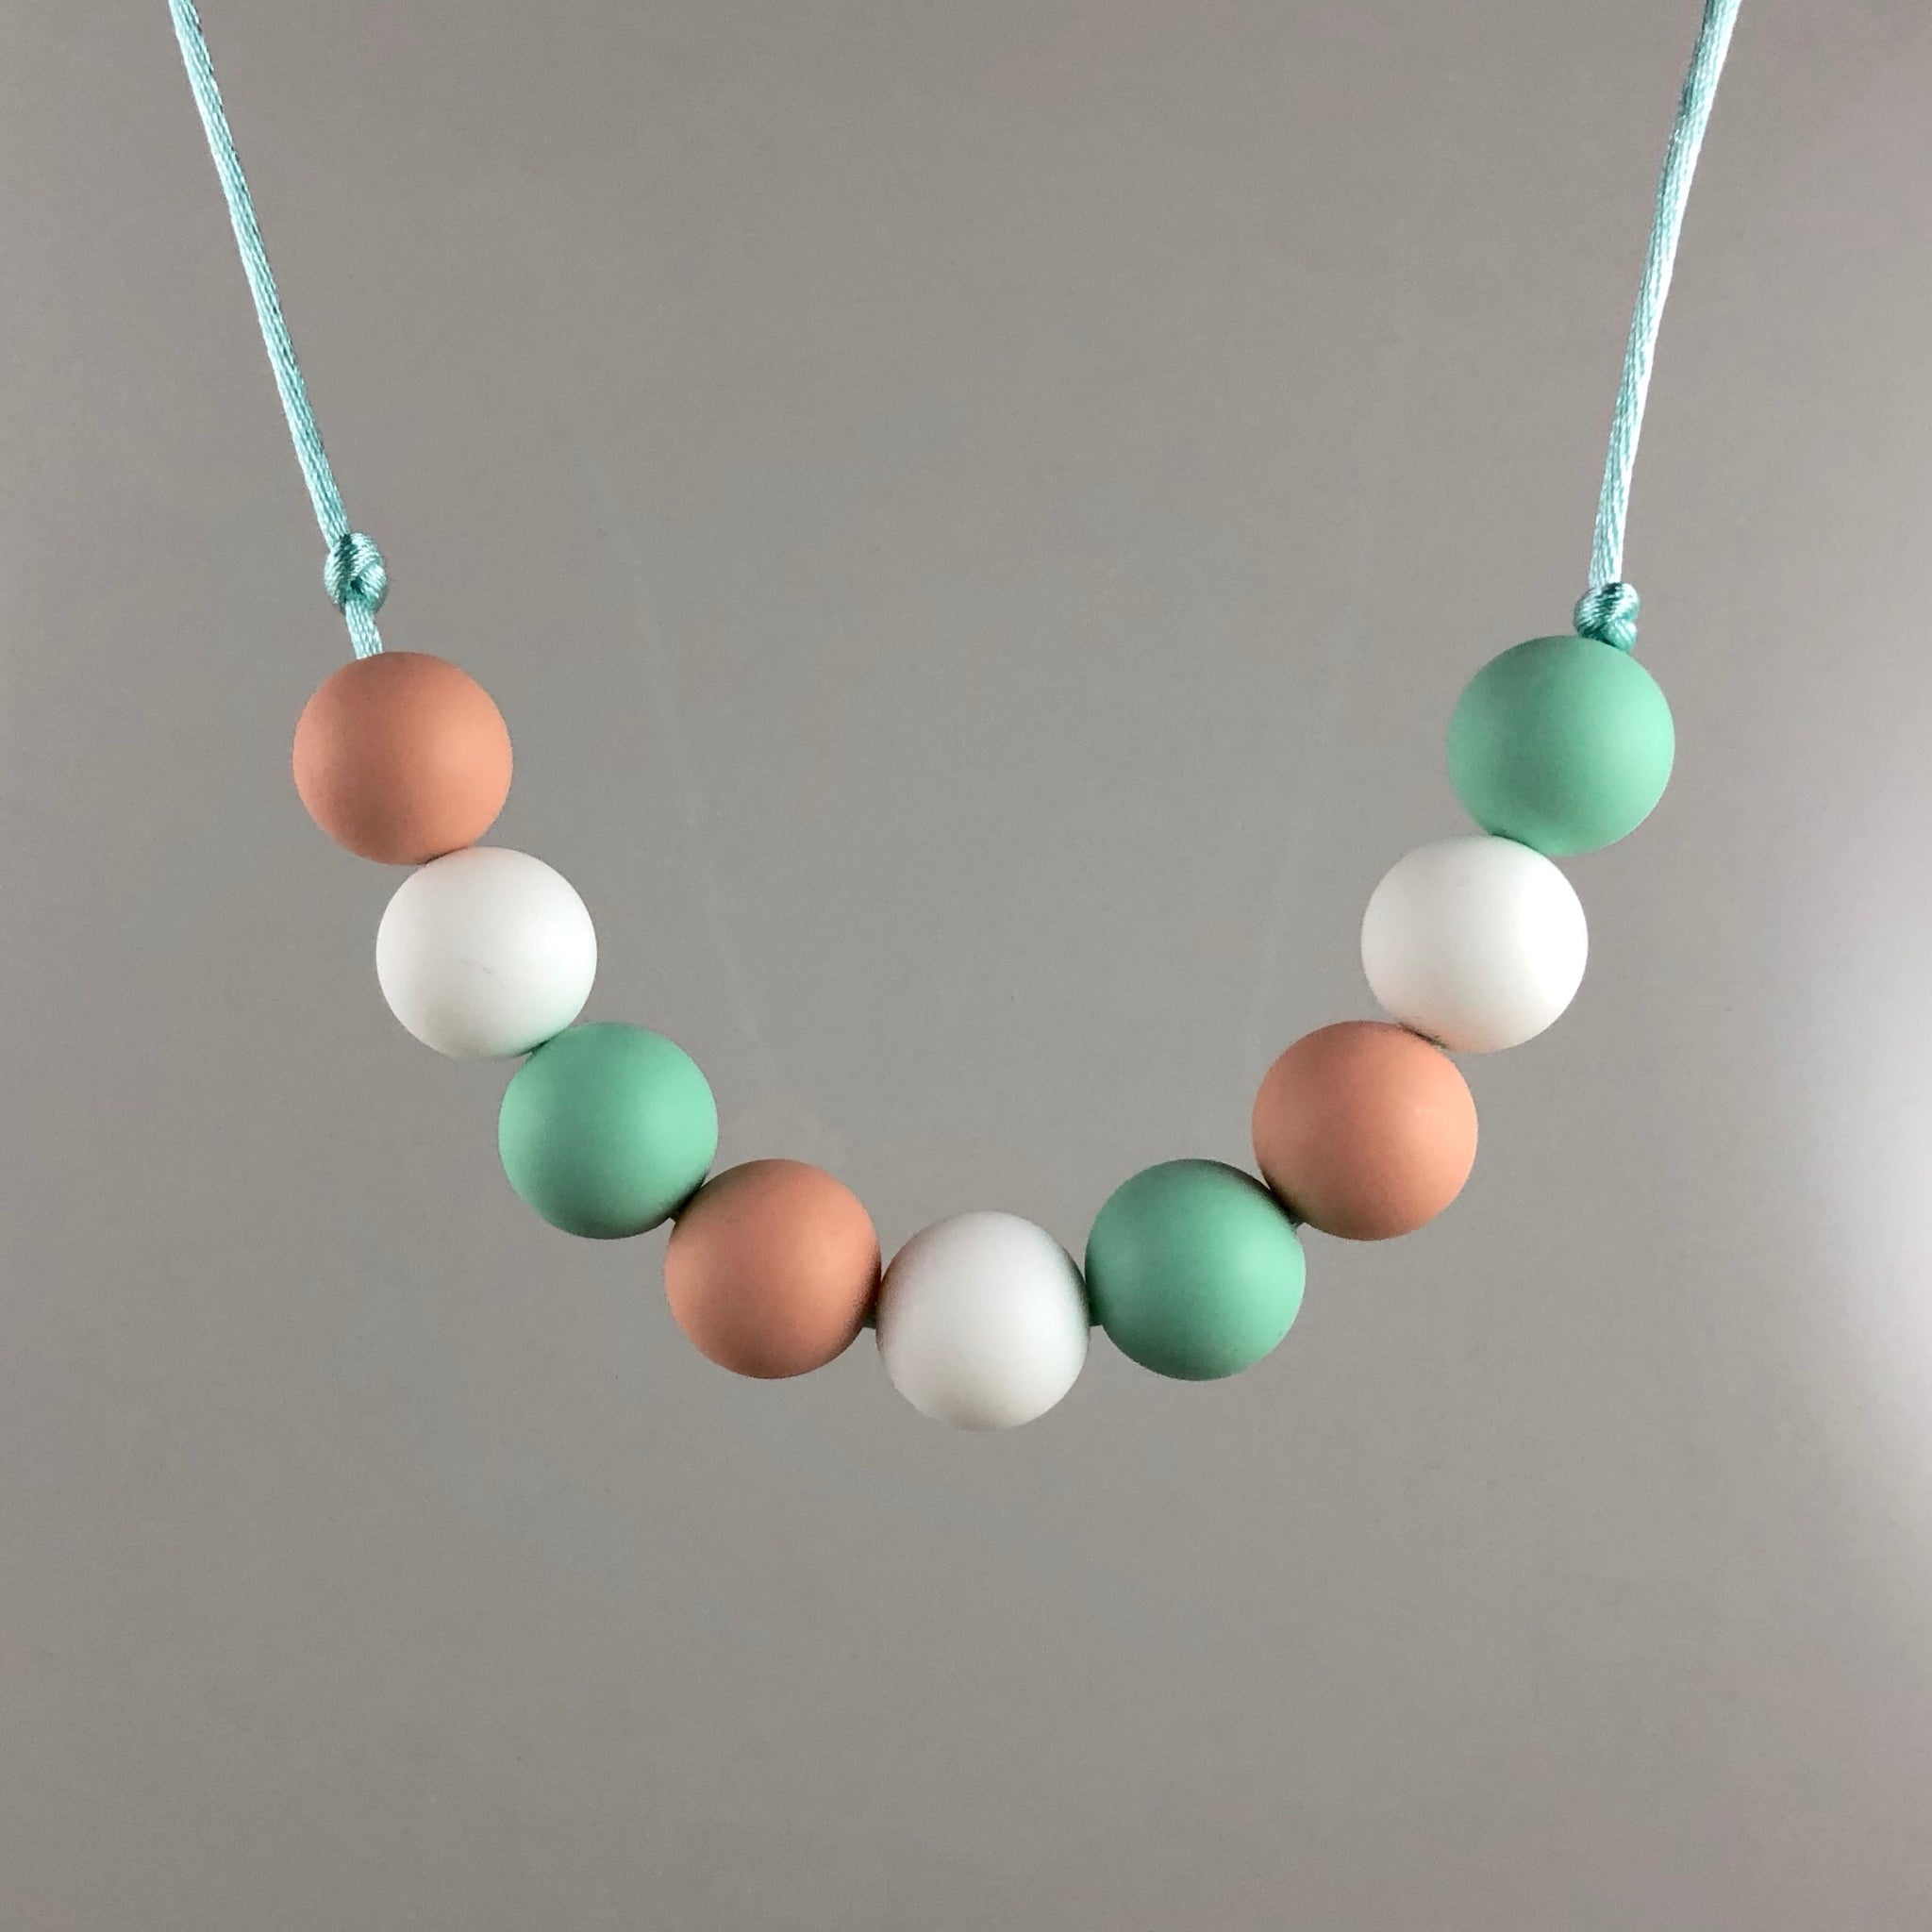 Sprinkle Silicone Teething Necklace - Little Buds Teethers